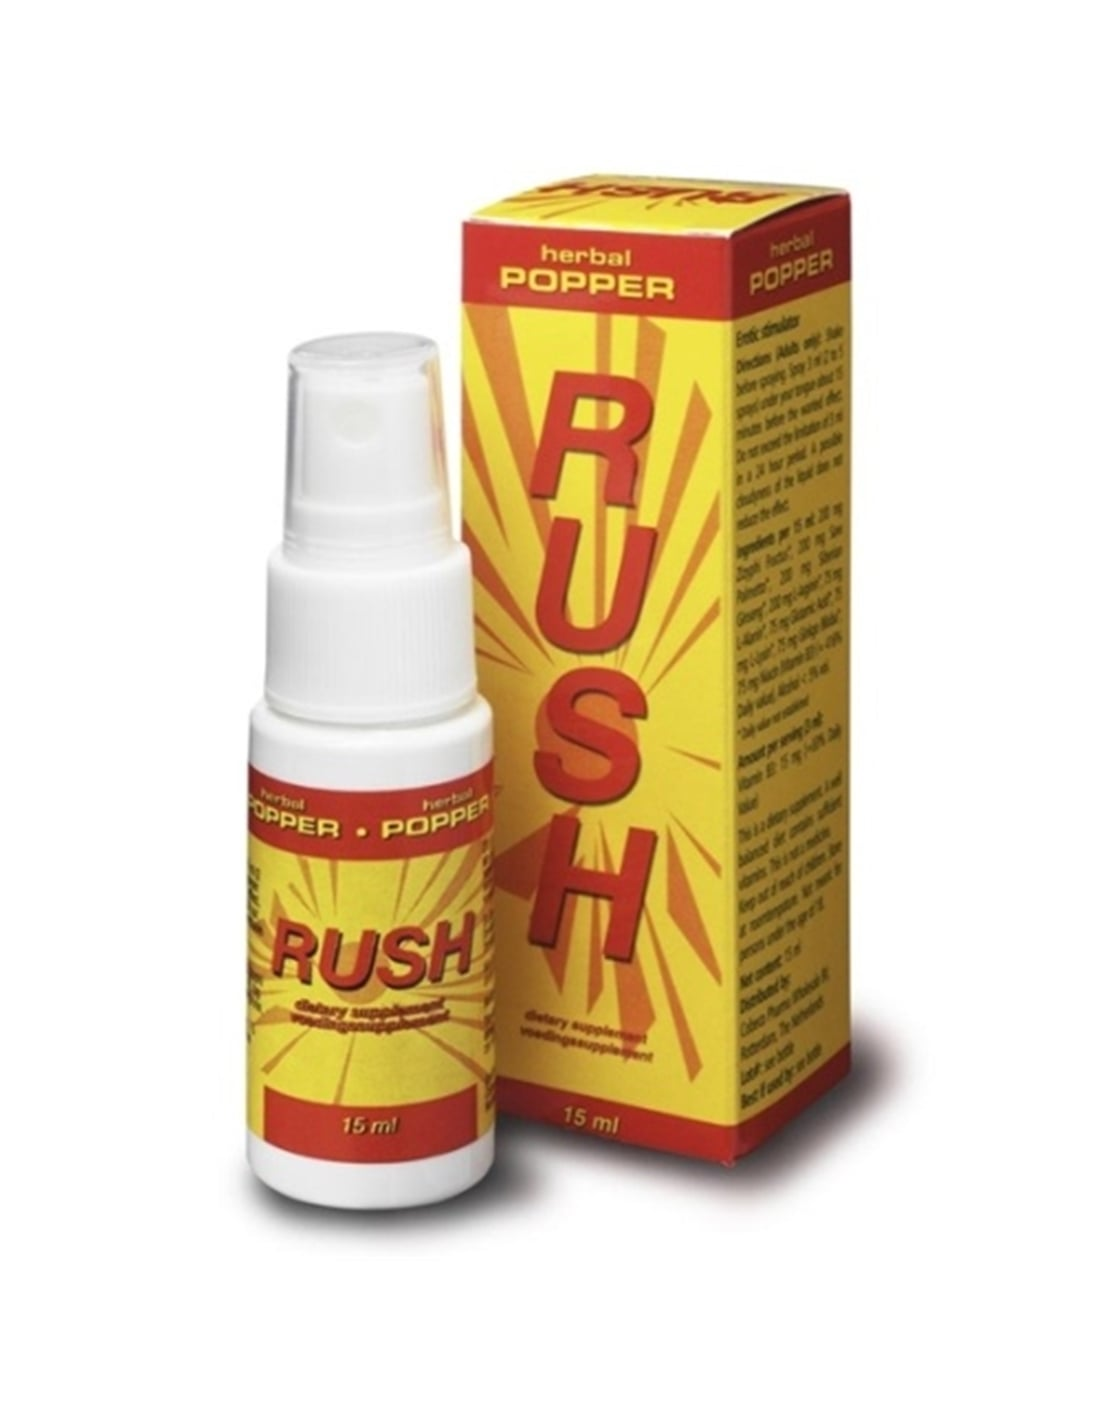 Spray Estimulante Rush Herbal Popper - 15ml - PR2010319714